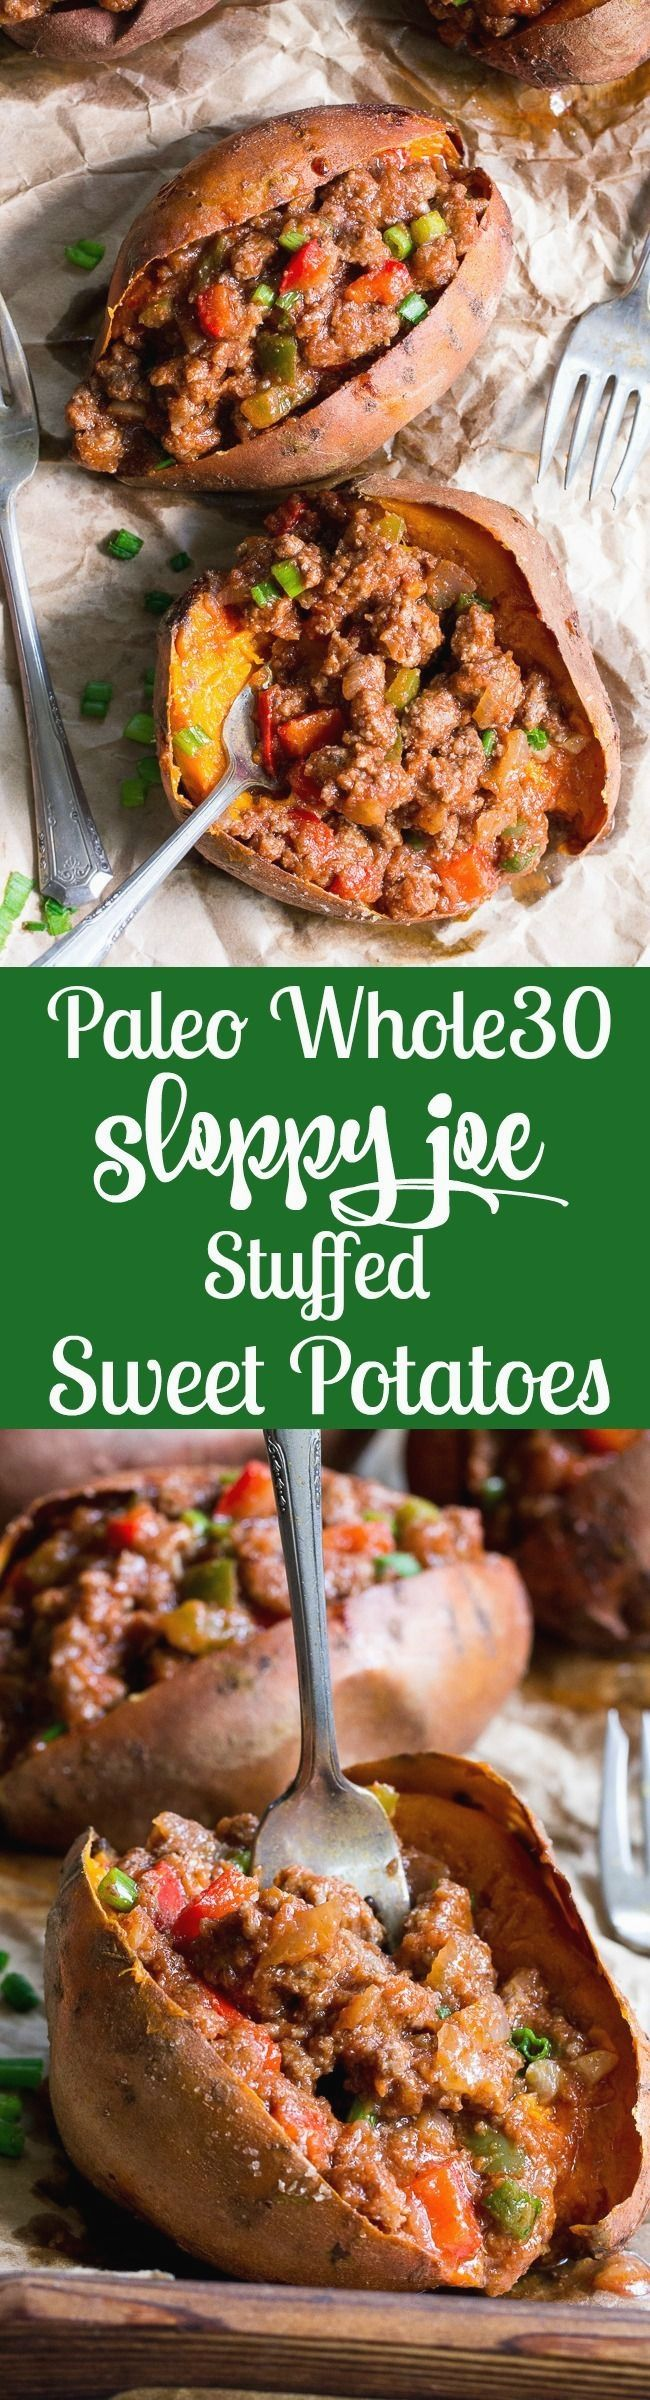 These Paleo sloppy joe stuffed sweet potatoes are classic comfort food made without the junk! The sauce is date sweetened to make it Whole30, and it's quick and easy enough for weeknight dinners. Family approved and makes great leftovers, too! quick diet dairy free